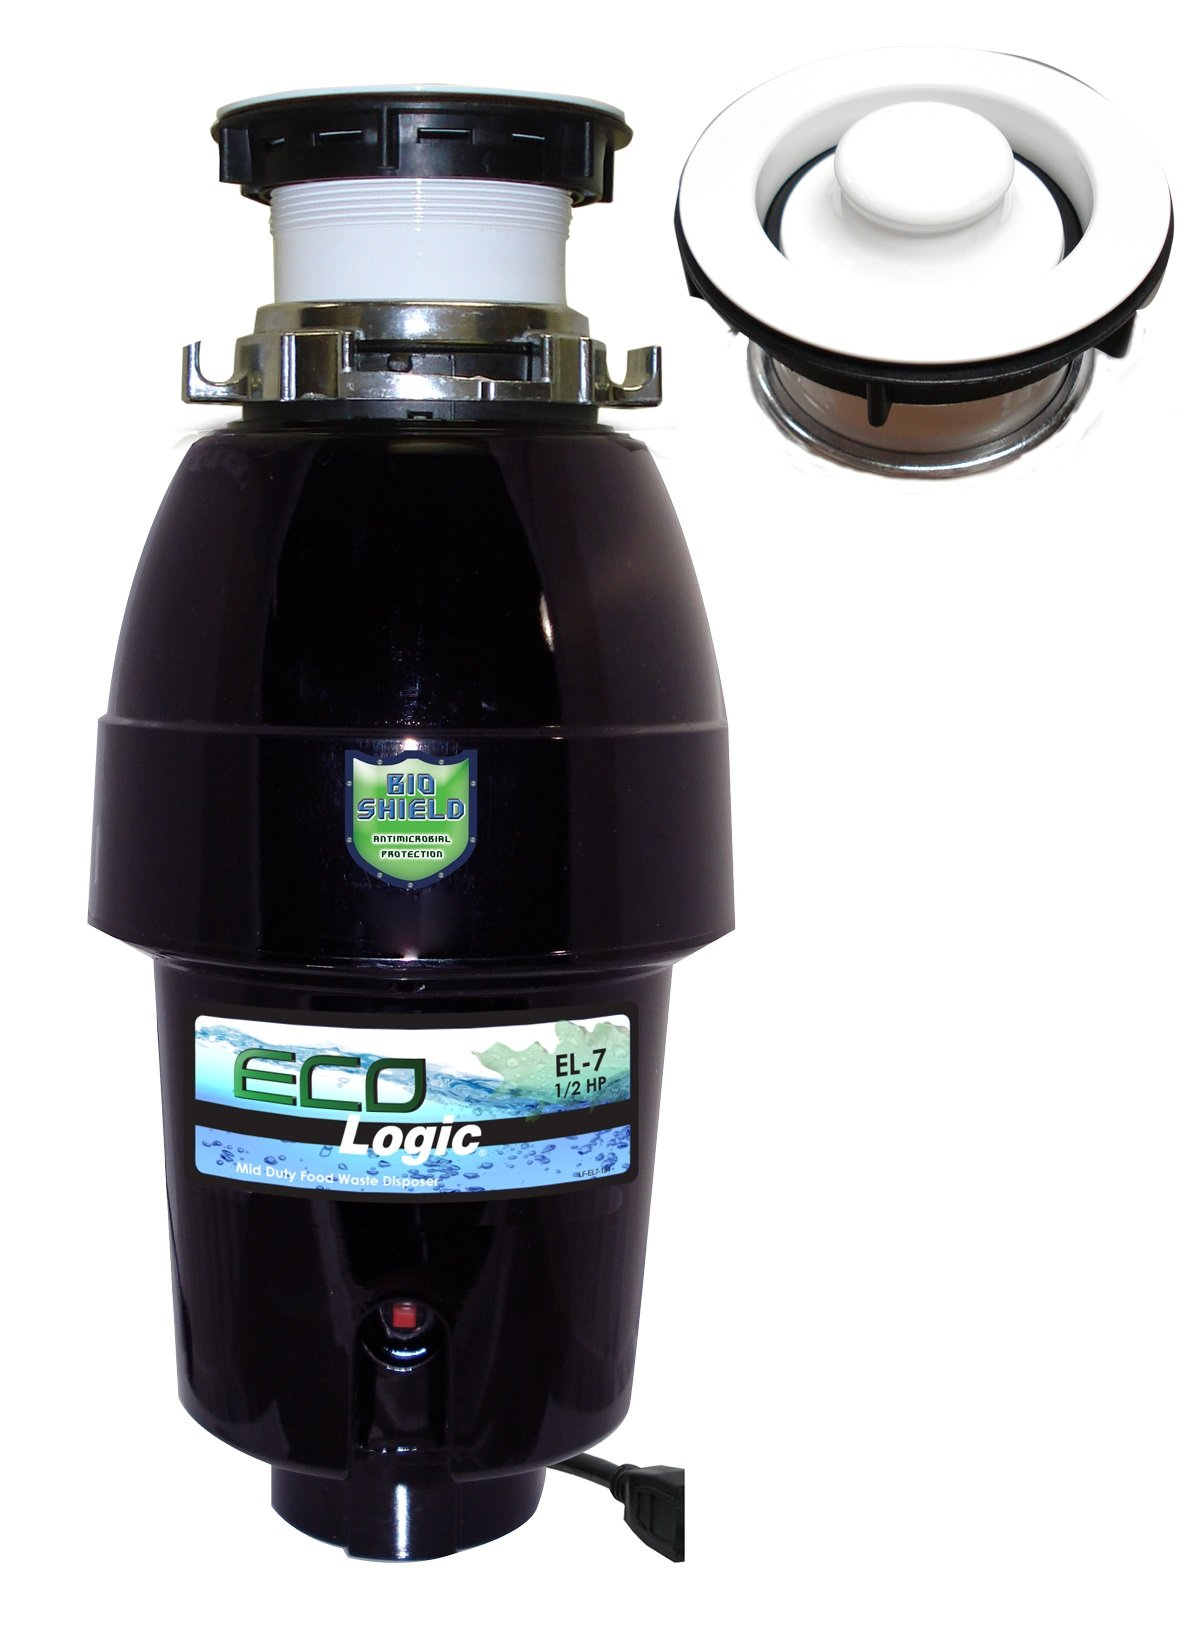 Eco Logic EL-7-DS-WH 7 Designer Series Food Waste Disposer with White Sink Flange, 1/2 HP by Eco Logic